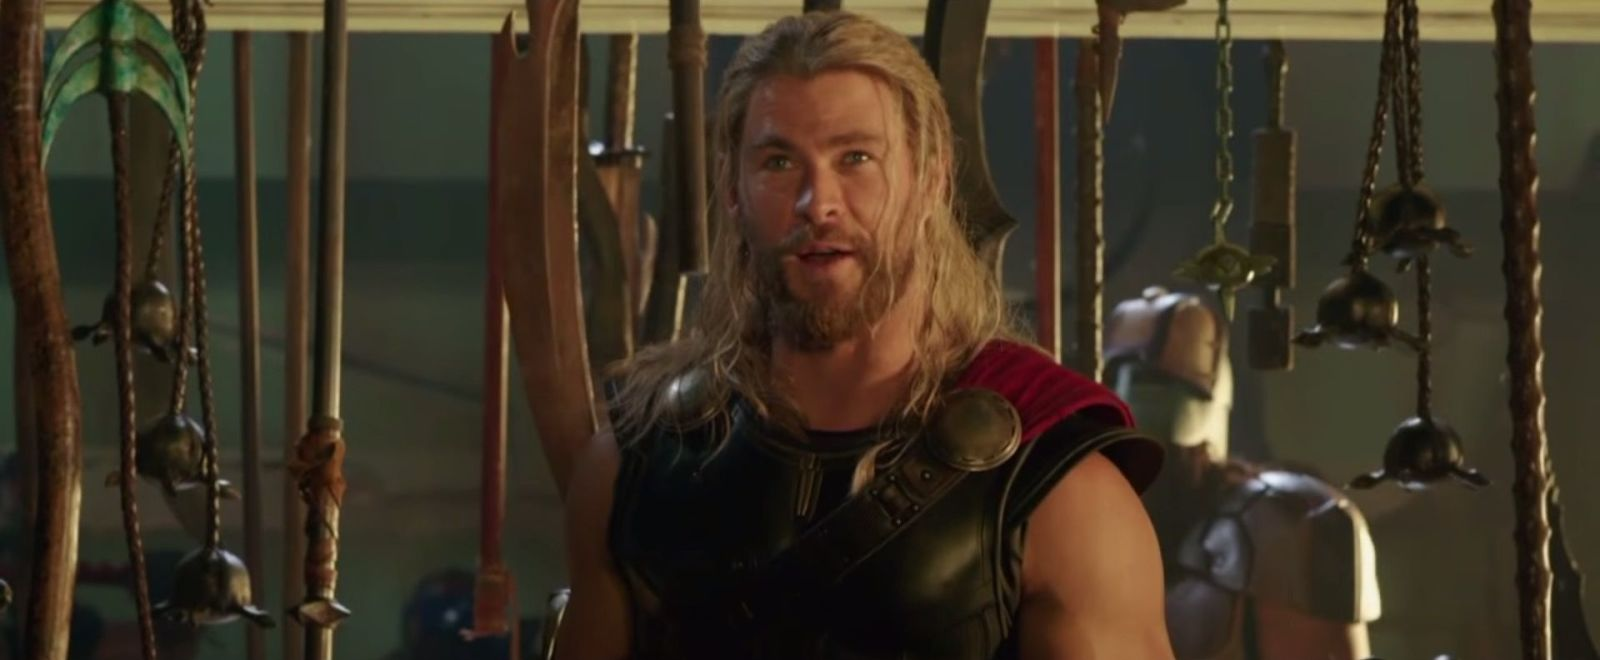 thor s the guy How 'thor: ragnarok' screenwriter (and former pizza guy) eric pearson became marvel's go-to script doctor.